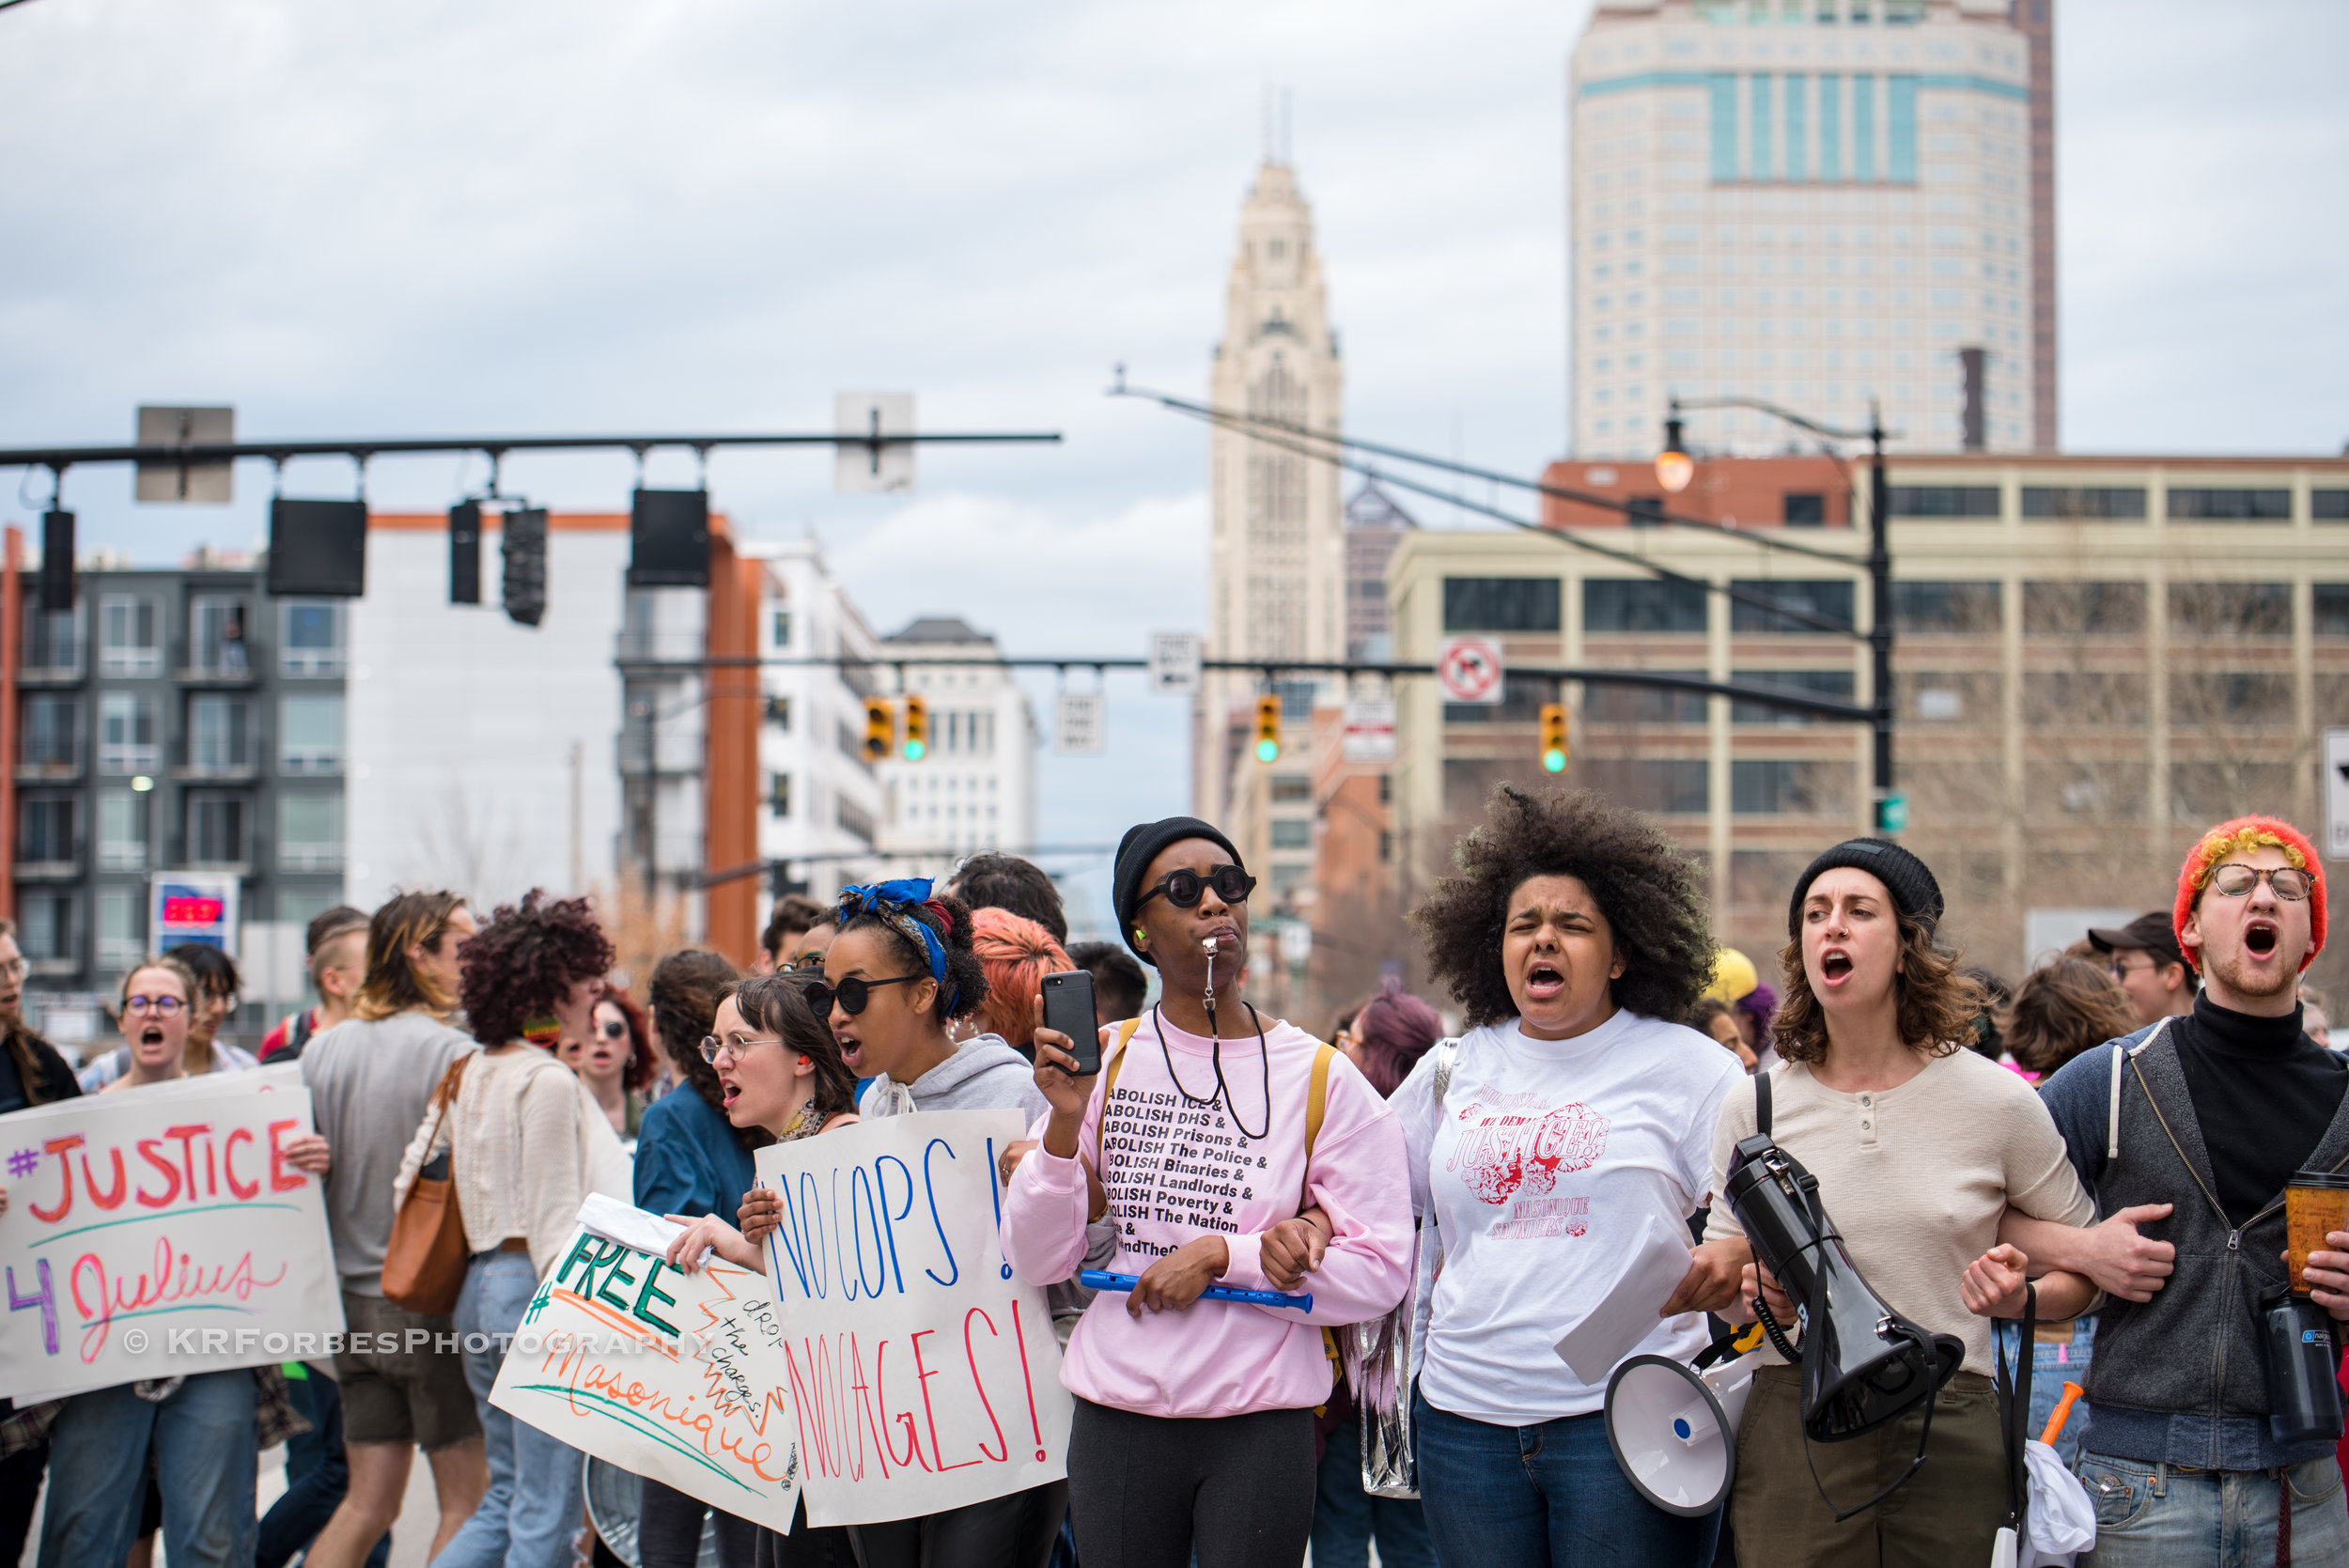 Raise a Ruckus - The Coalition to #freemasonique gathered in downtown #columbusohio to show their support for Masonique Saunders. Masonique, 17, is being charged with the murder of her boyfriend #JuliusTate , 16, who was shot and killed by the controversial Columbus POLICE during a sting operation in December 2018.click image to view more